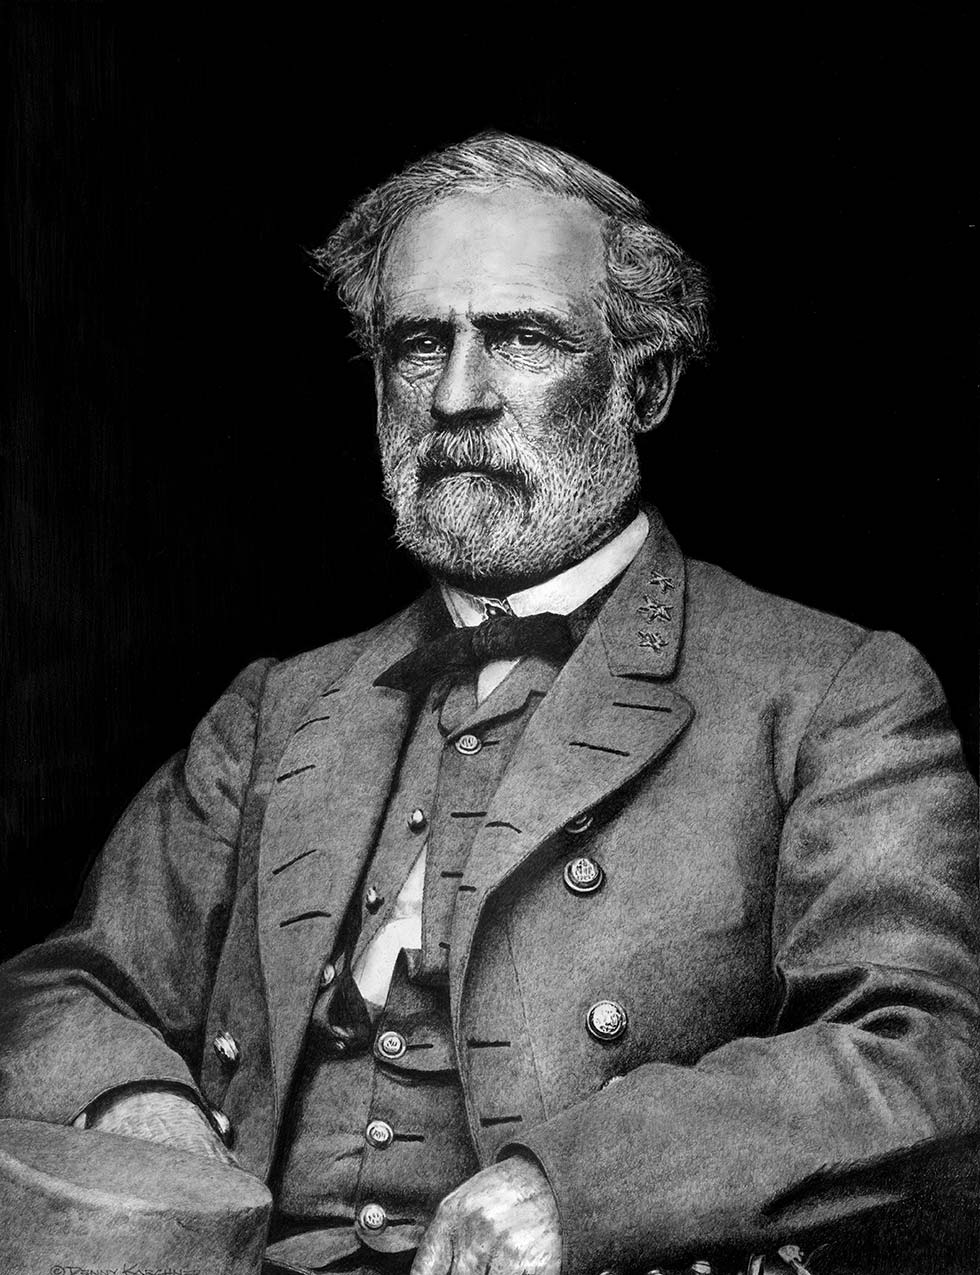 """a biography of general robert edward lee the greatest soldier of the confederate states Lee declined lincoln's offer and instead resigned from the united states army to  side with the  robert e lee's greatest battle loss was the battle of gettysburg,  but his ultimate loss was  """"a soldier has a hard life and but little consideration""""    general robert e lee venting his frustration with the confederate congress."""